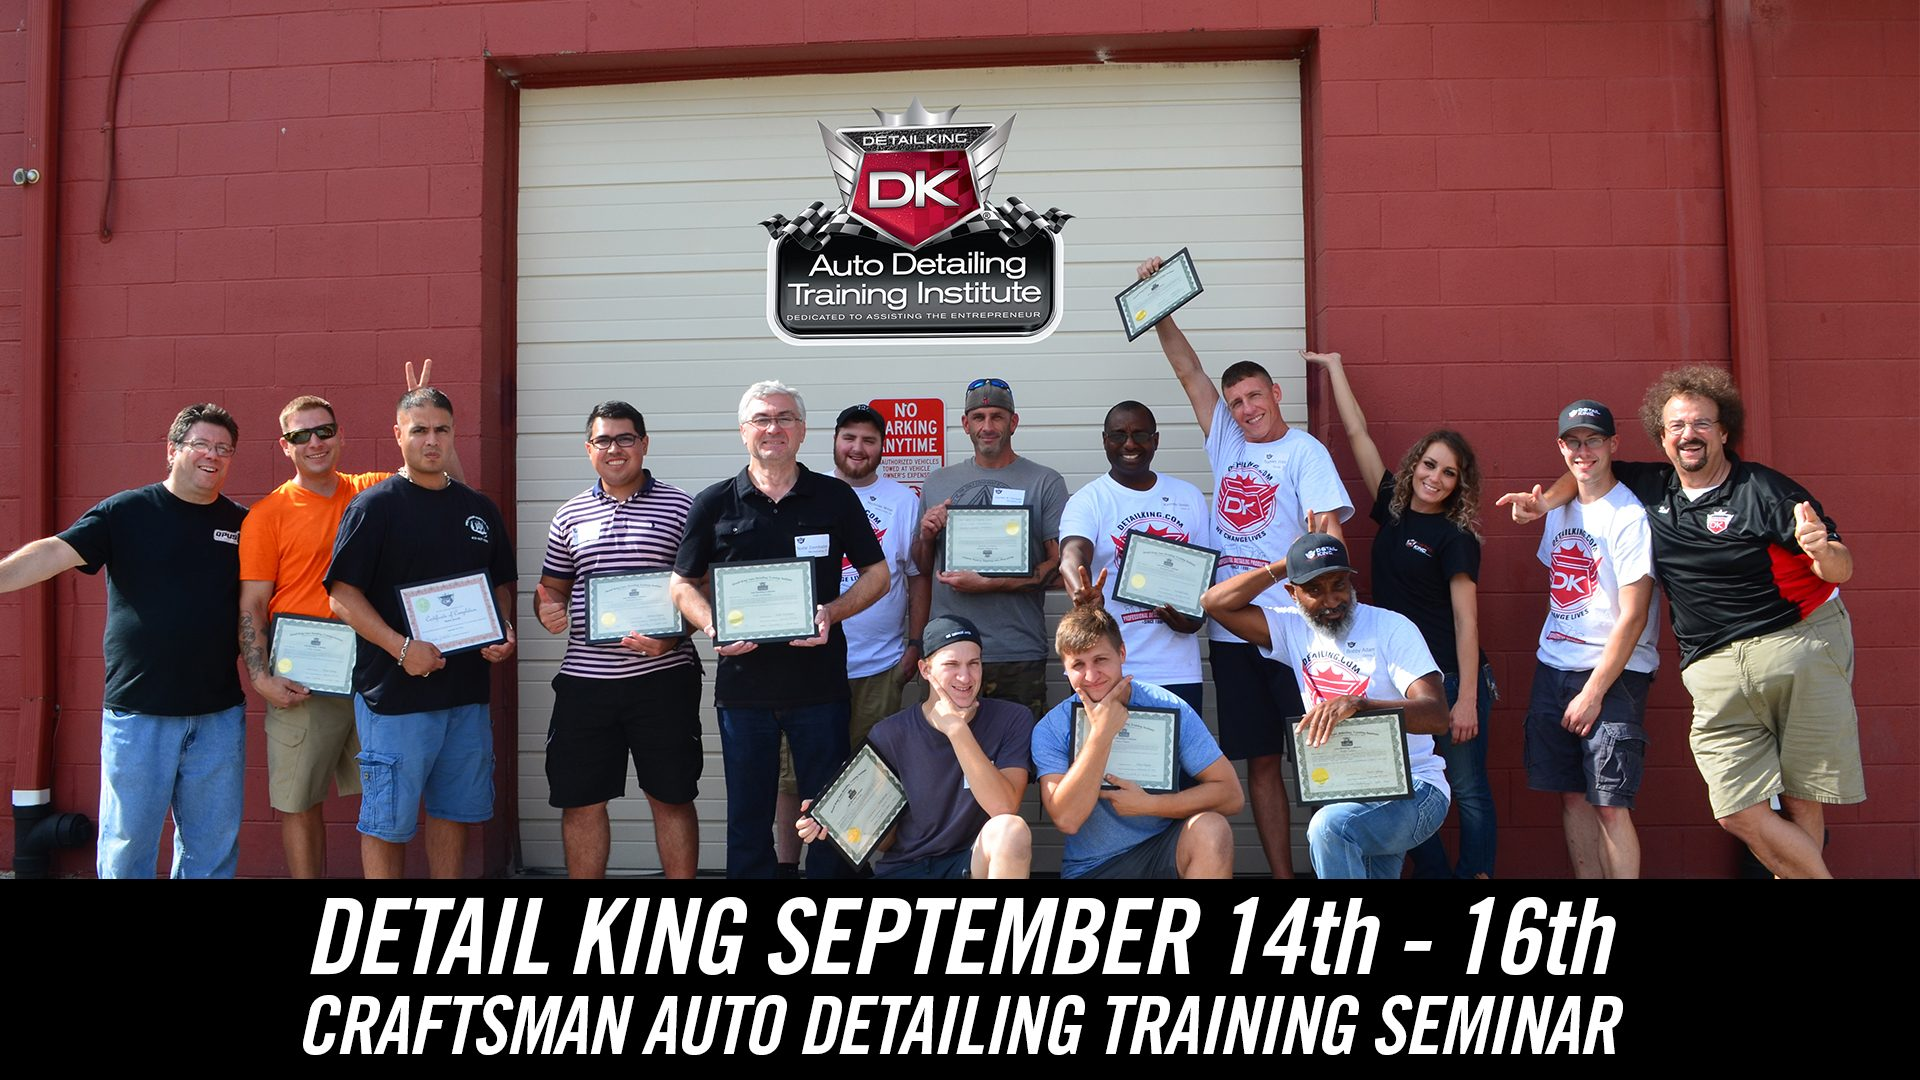 September 14th – 15th 2018 Craftsman Auto Detailing Training Seminar